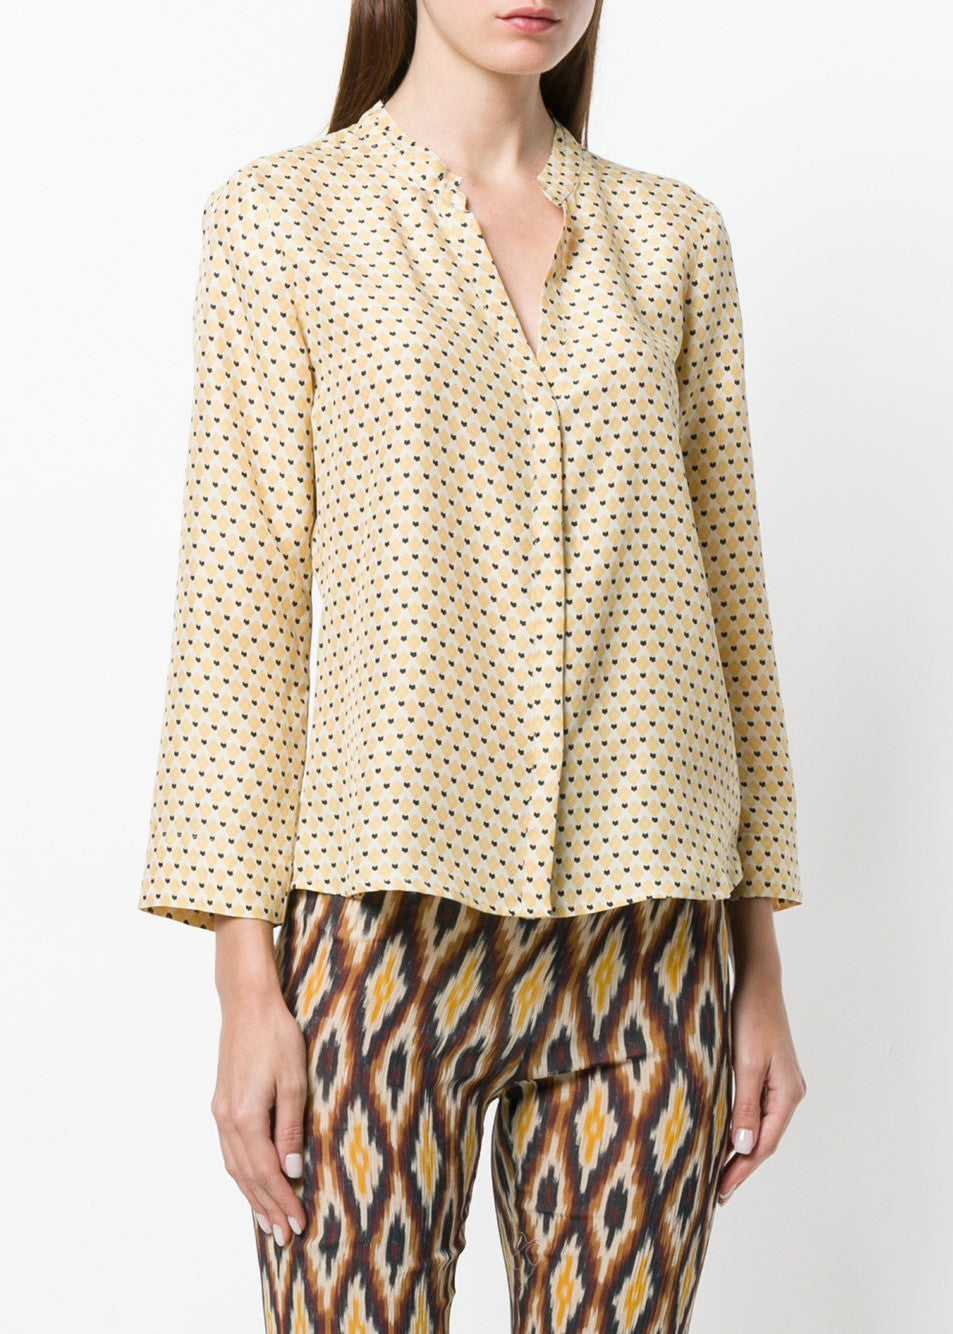 Diega Costa top in yellow print